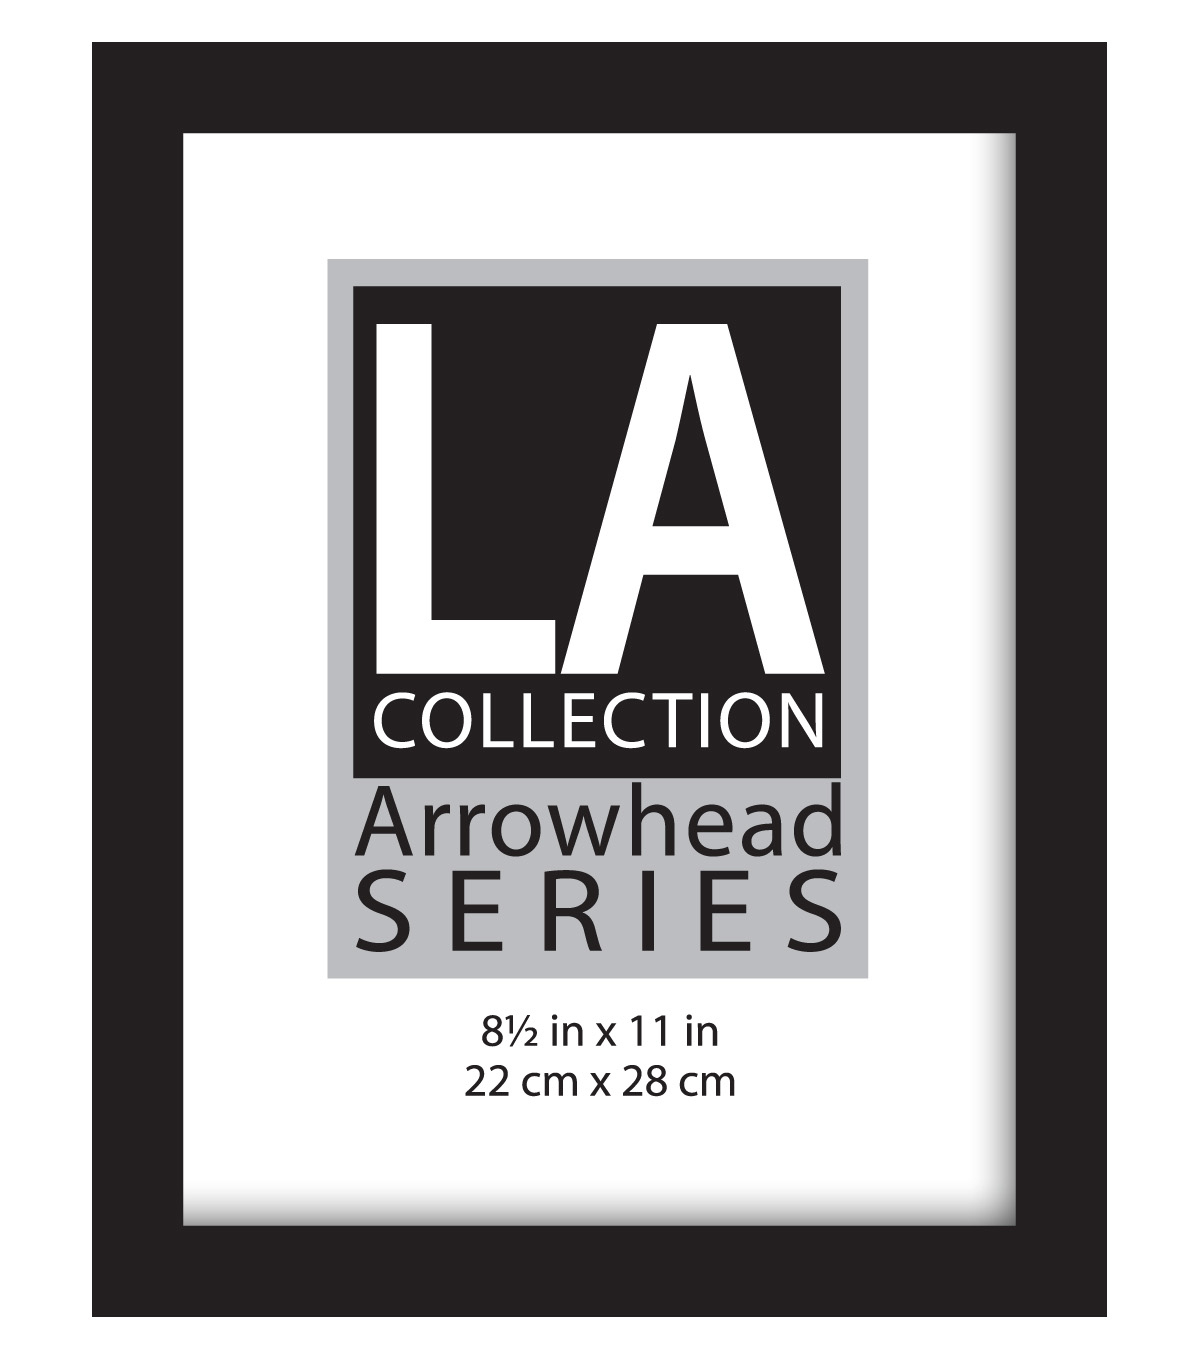 La Arrowhead Series Black Document Frame Joann